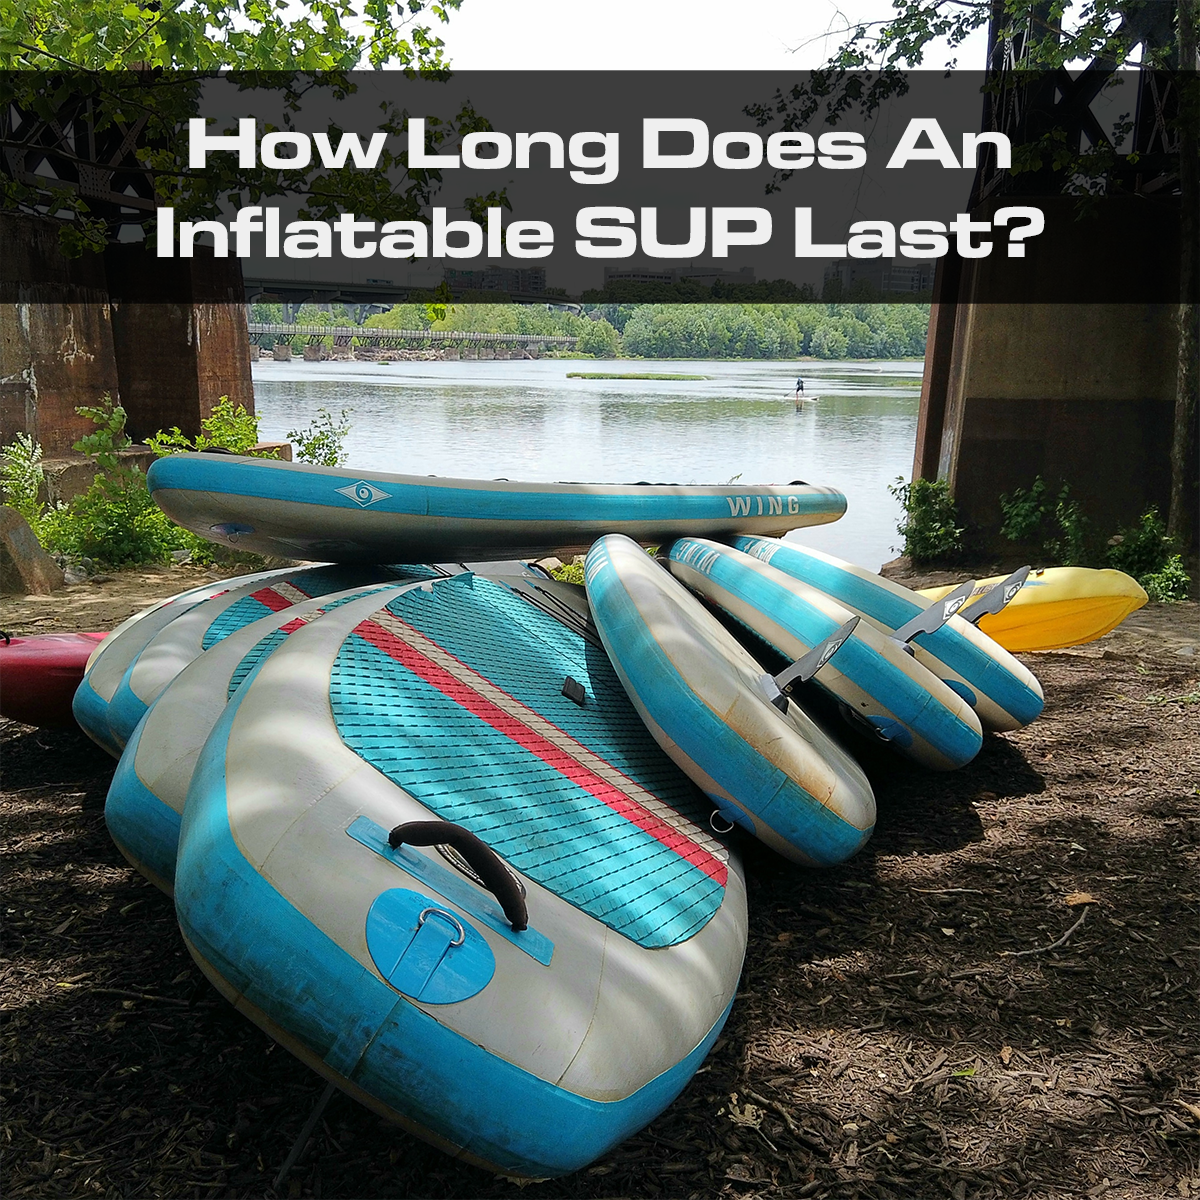 How Long Does An Inflatable SUP Last